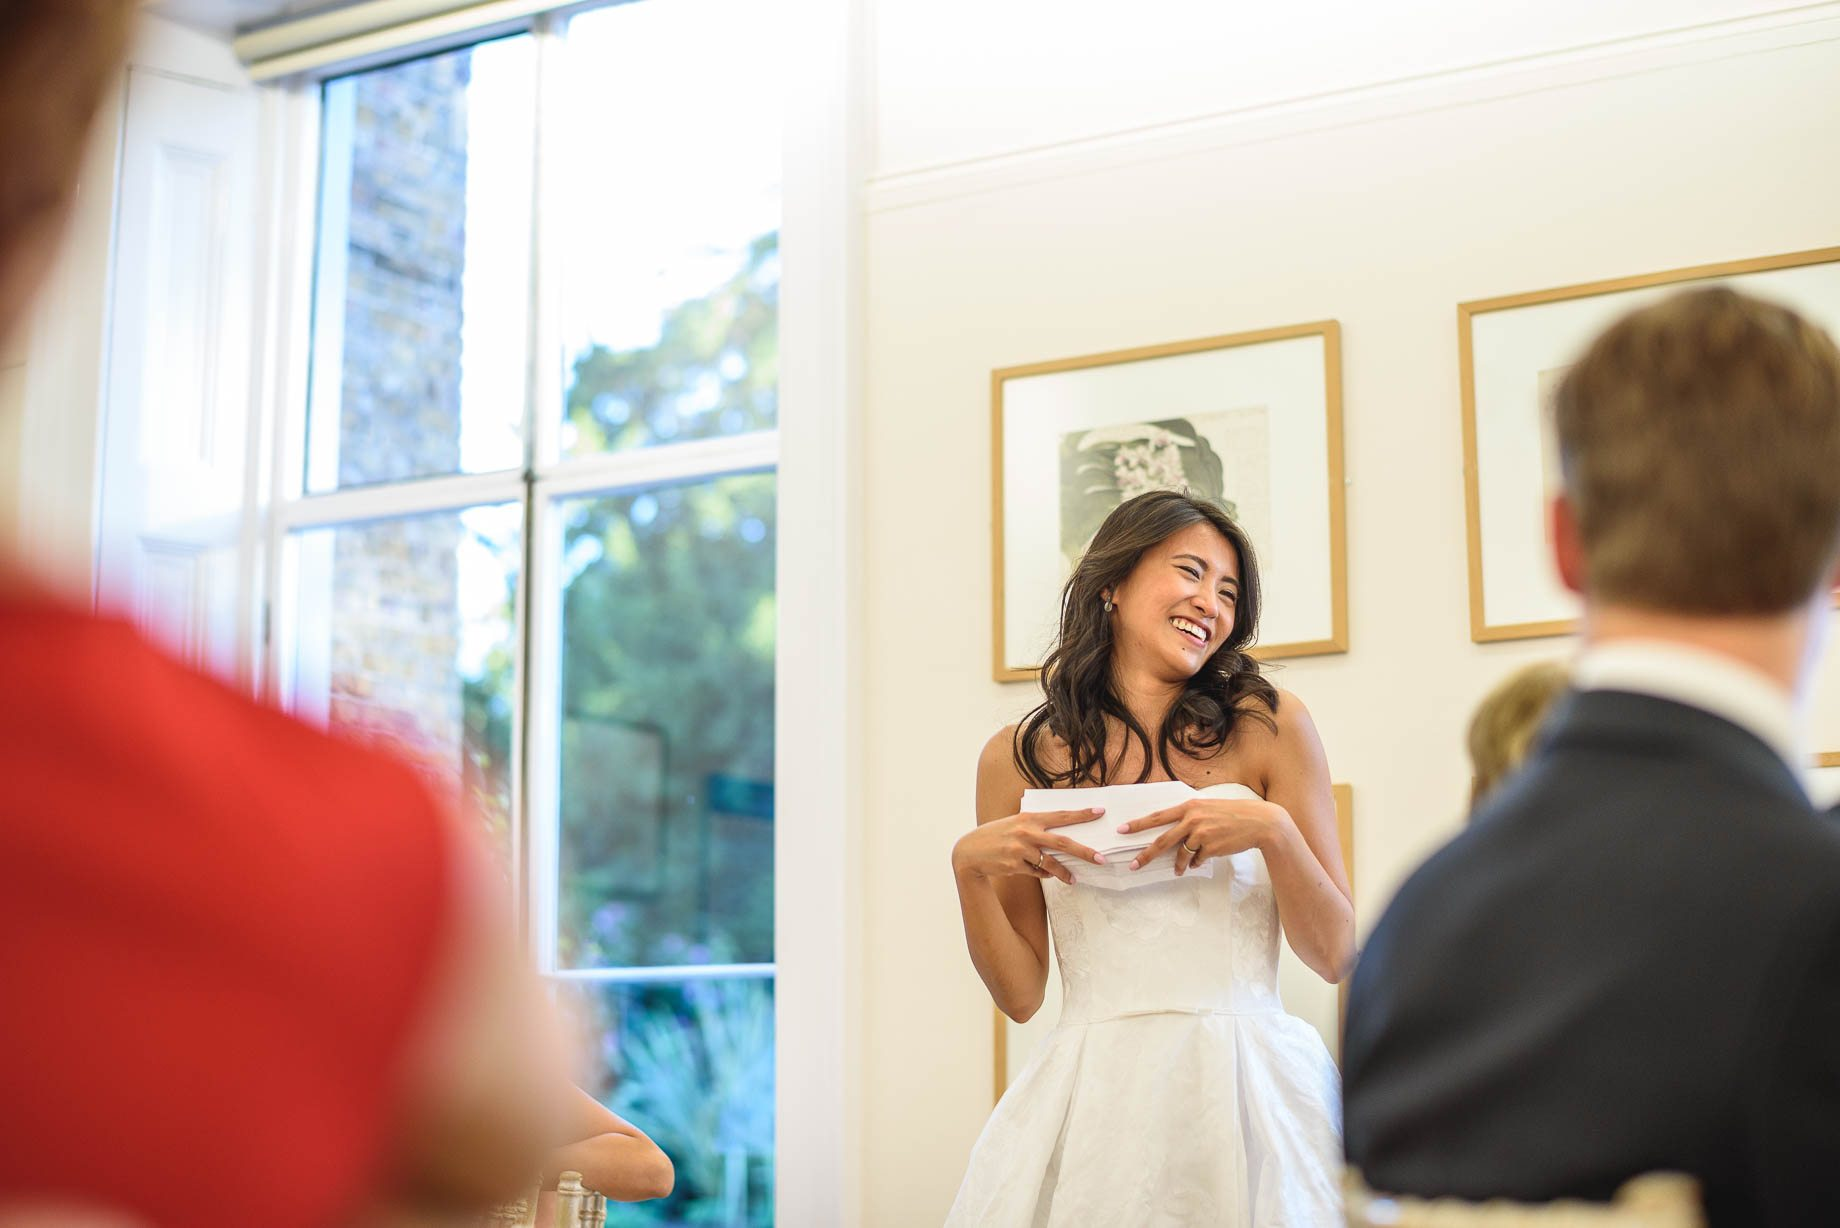 Kew Gardens wedding photography - Guy Collier Photography - Gloria and Frederik (127 of 173)